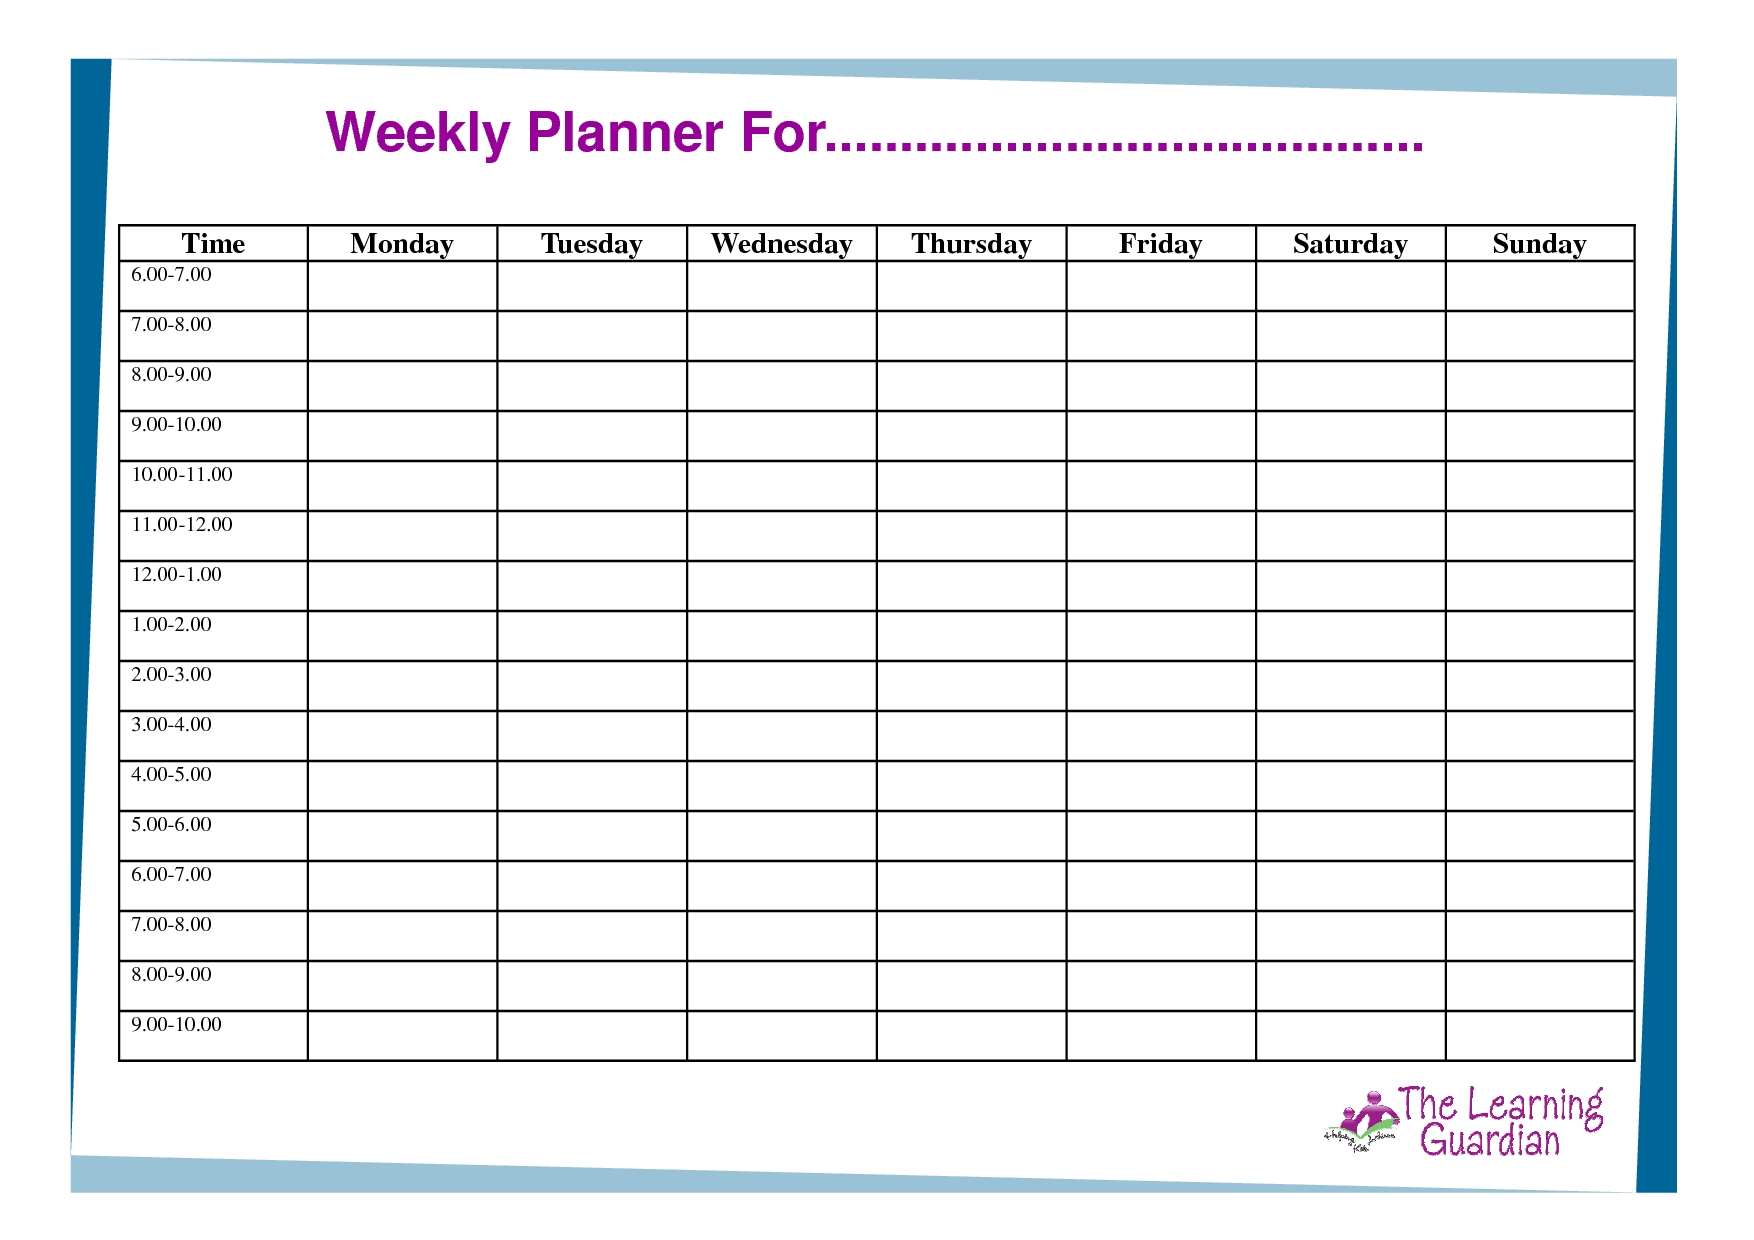 Free Printable Weekly Calendar Templates   Weekly Planner For Time with Blank Weekly Calender With Time